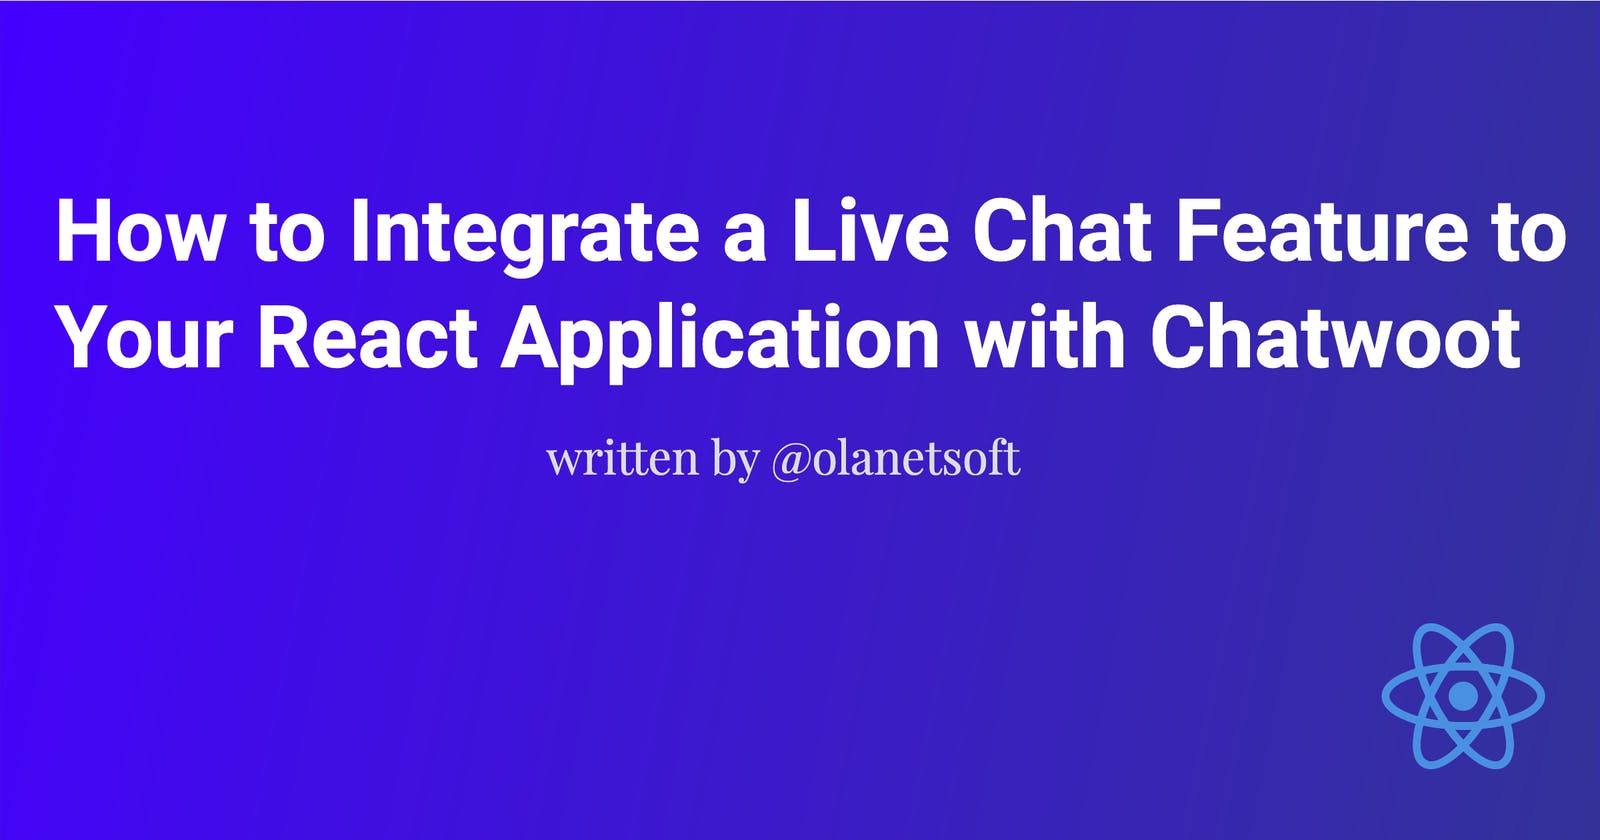 How to Integrate a Live Chat Feature to Your React Application with Chatwoot